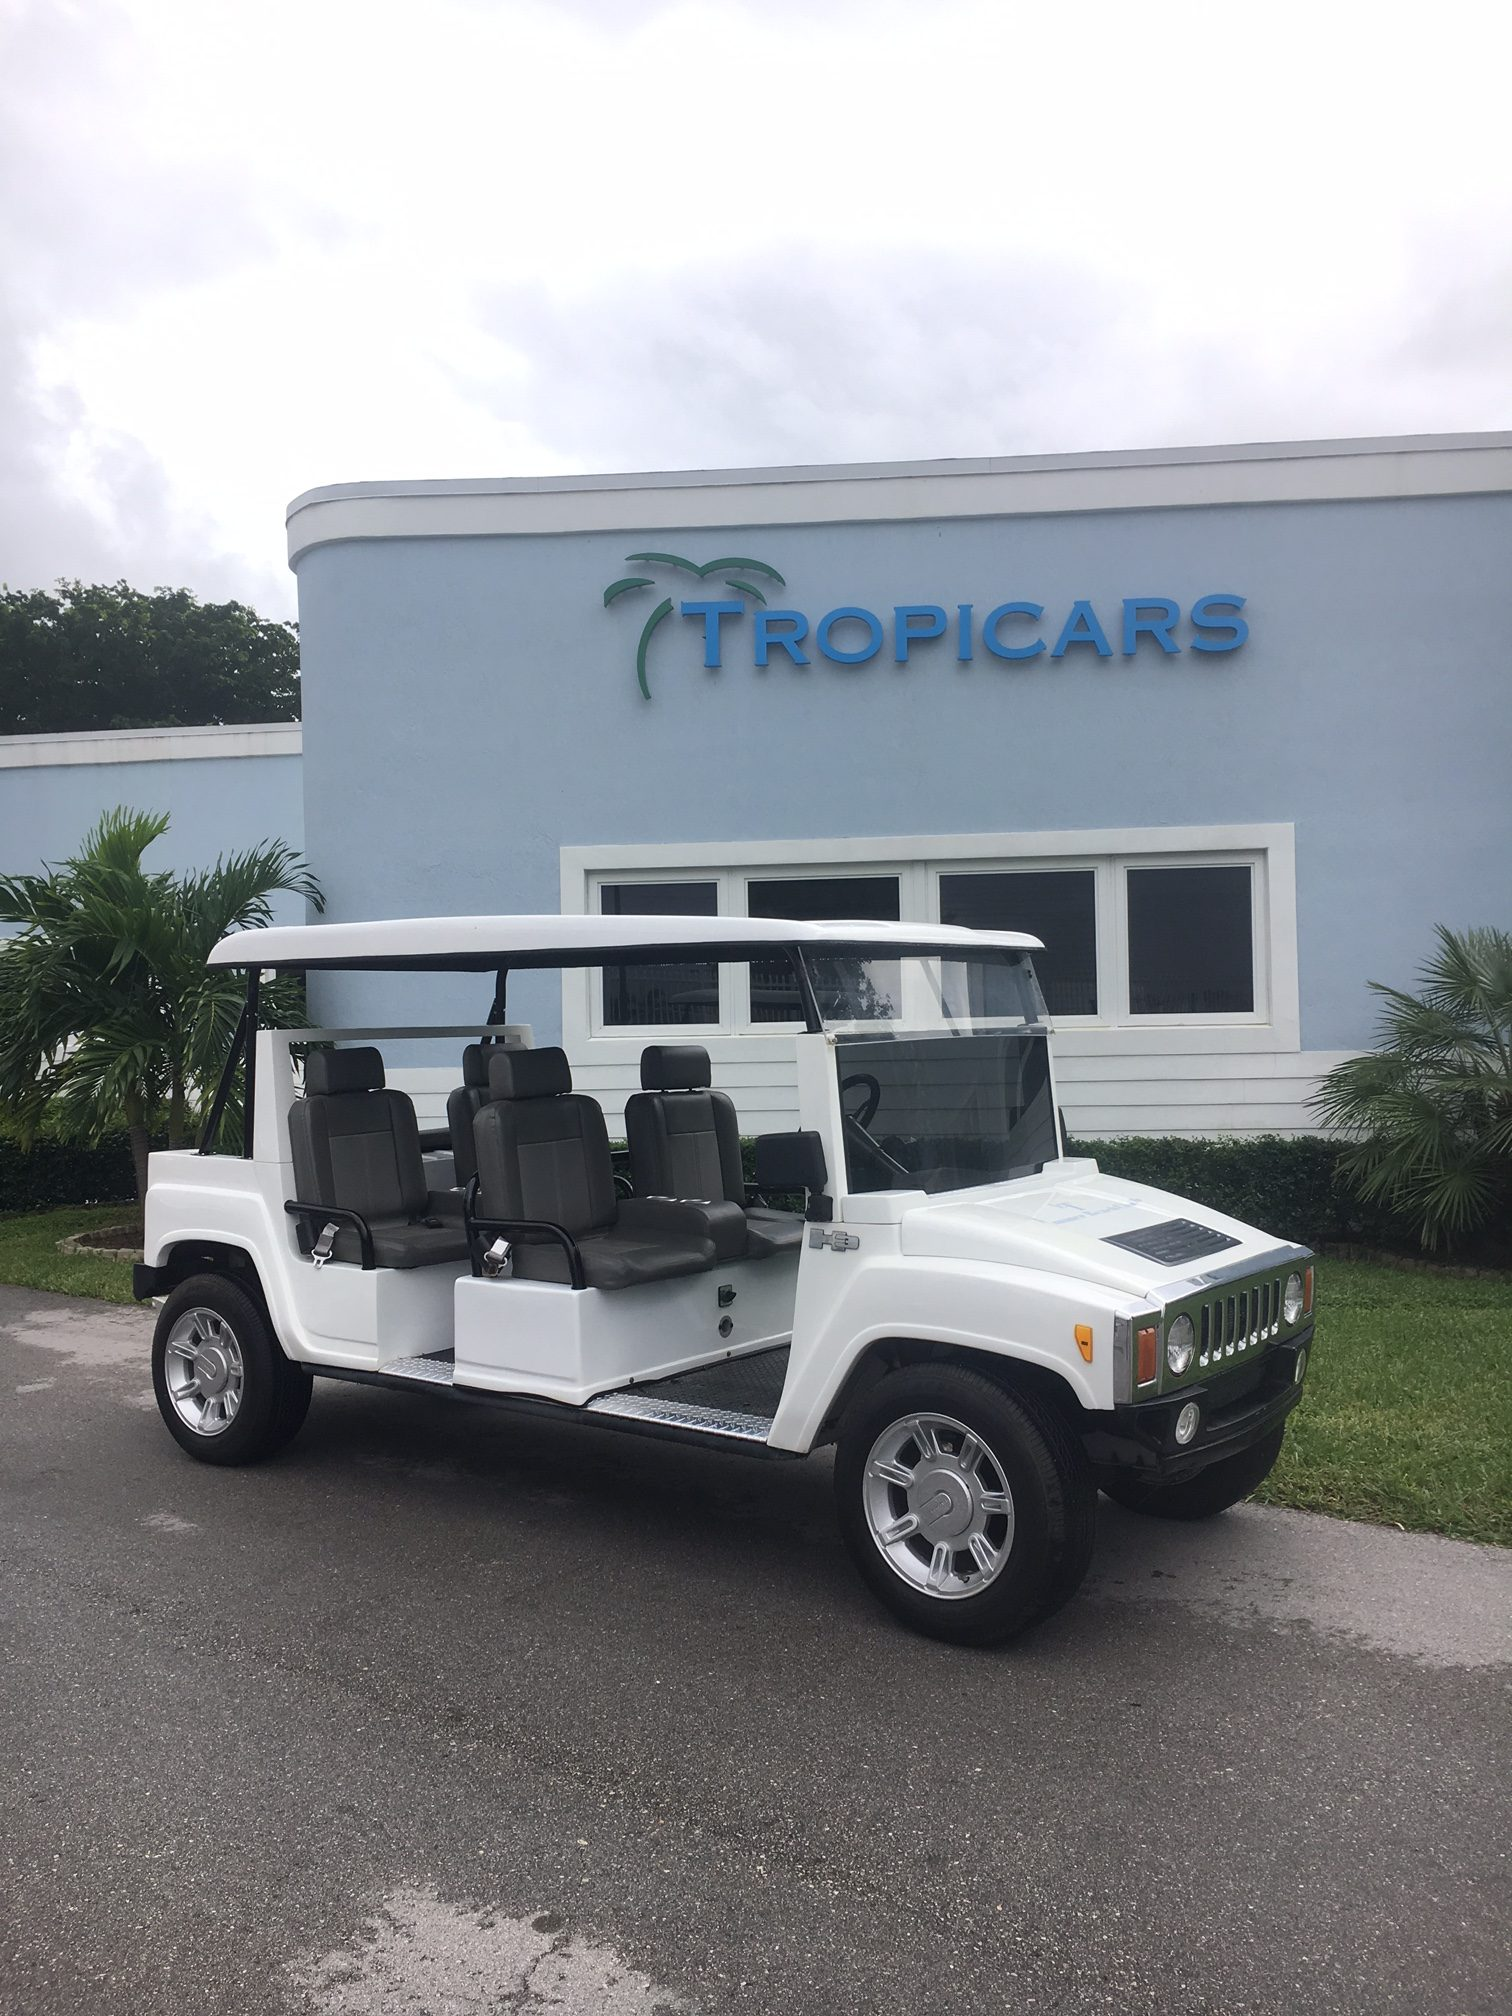 Inventory Tropicars Golf & Utility VehiclesTropicars Golf